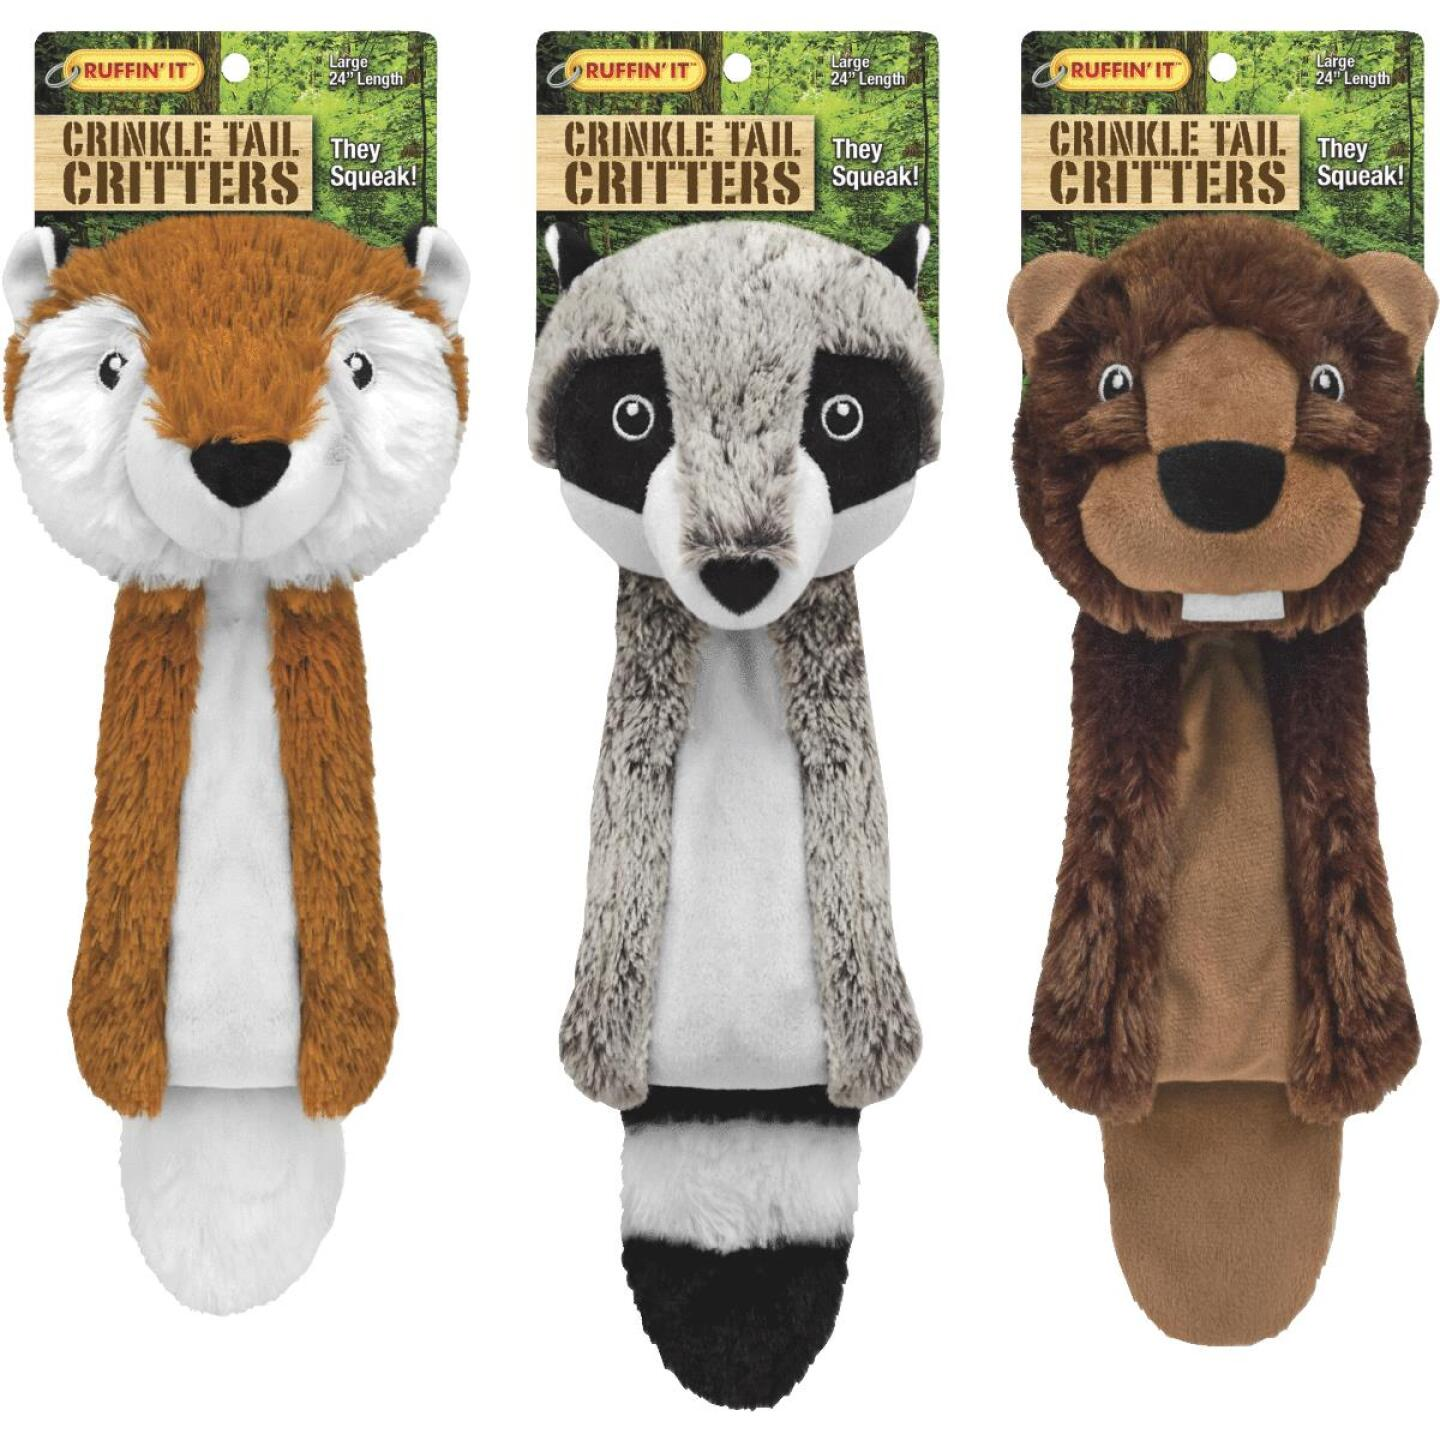 Westminster Pet Ruffin' it Crinkle Tail Critters 24 In. Squeaky Fox Dog Toy Image 1